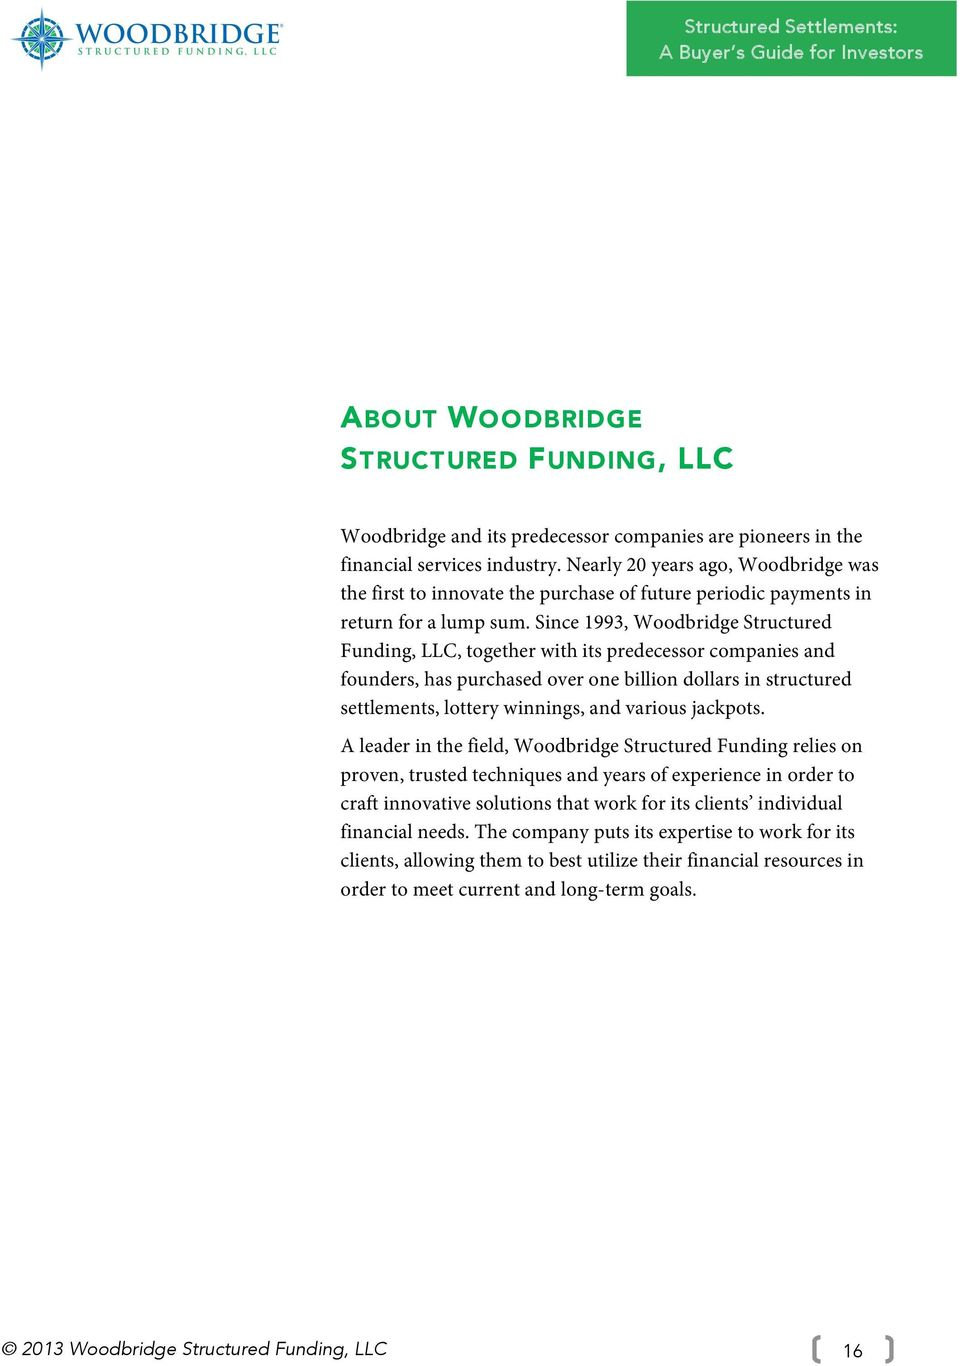 Since 1993, Woodbridge Structured Funding, LLC, together with its predecessor companies and founders, has purchased over one billion dollars in structured settlements, lottery winnings, and various